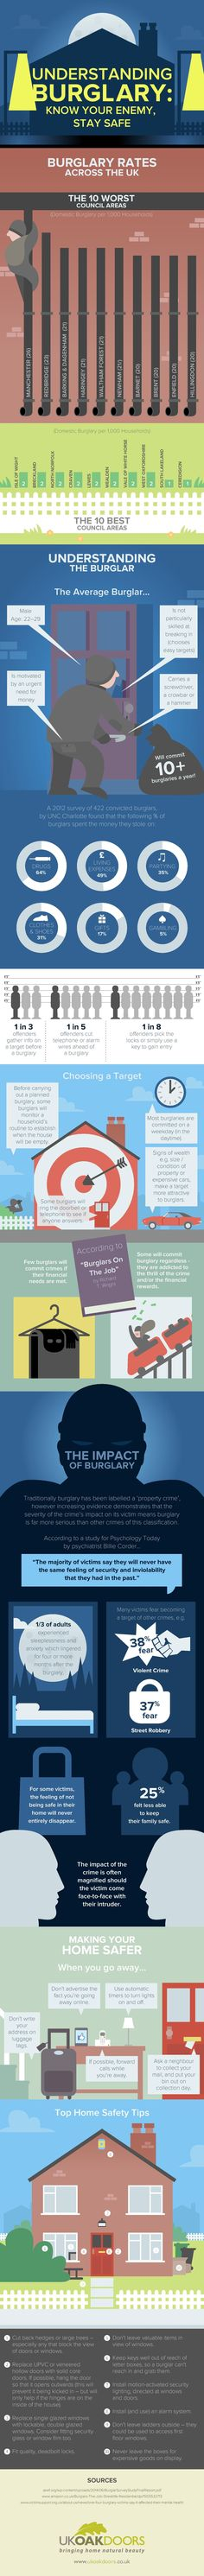 Do you know how safe your home is? #burglary #NHSM #infographic